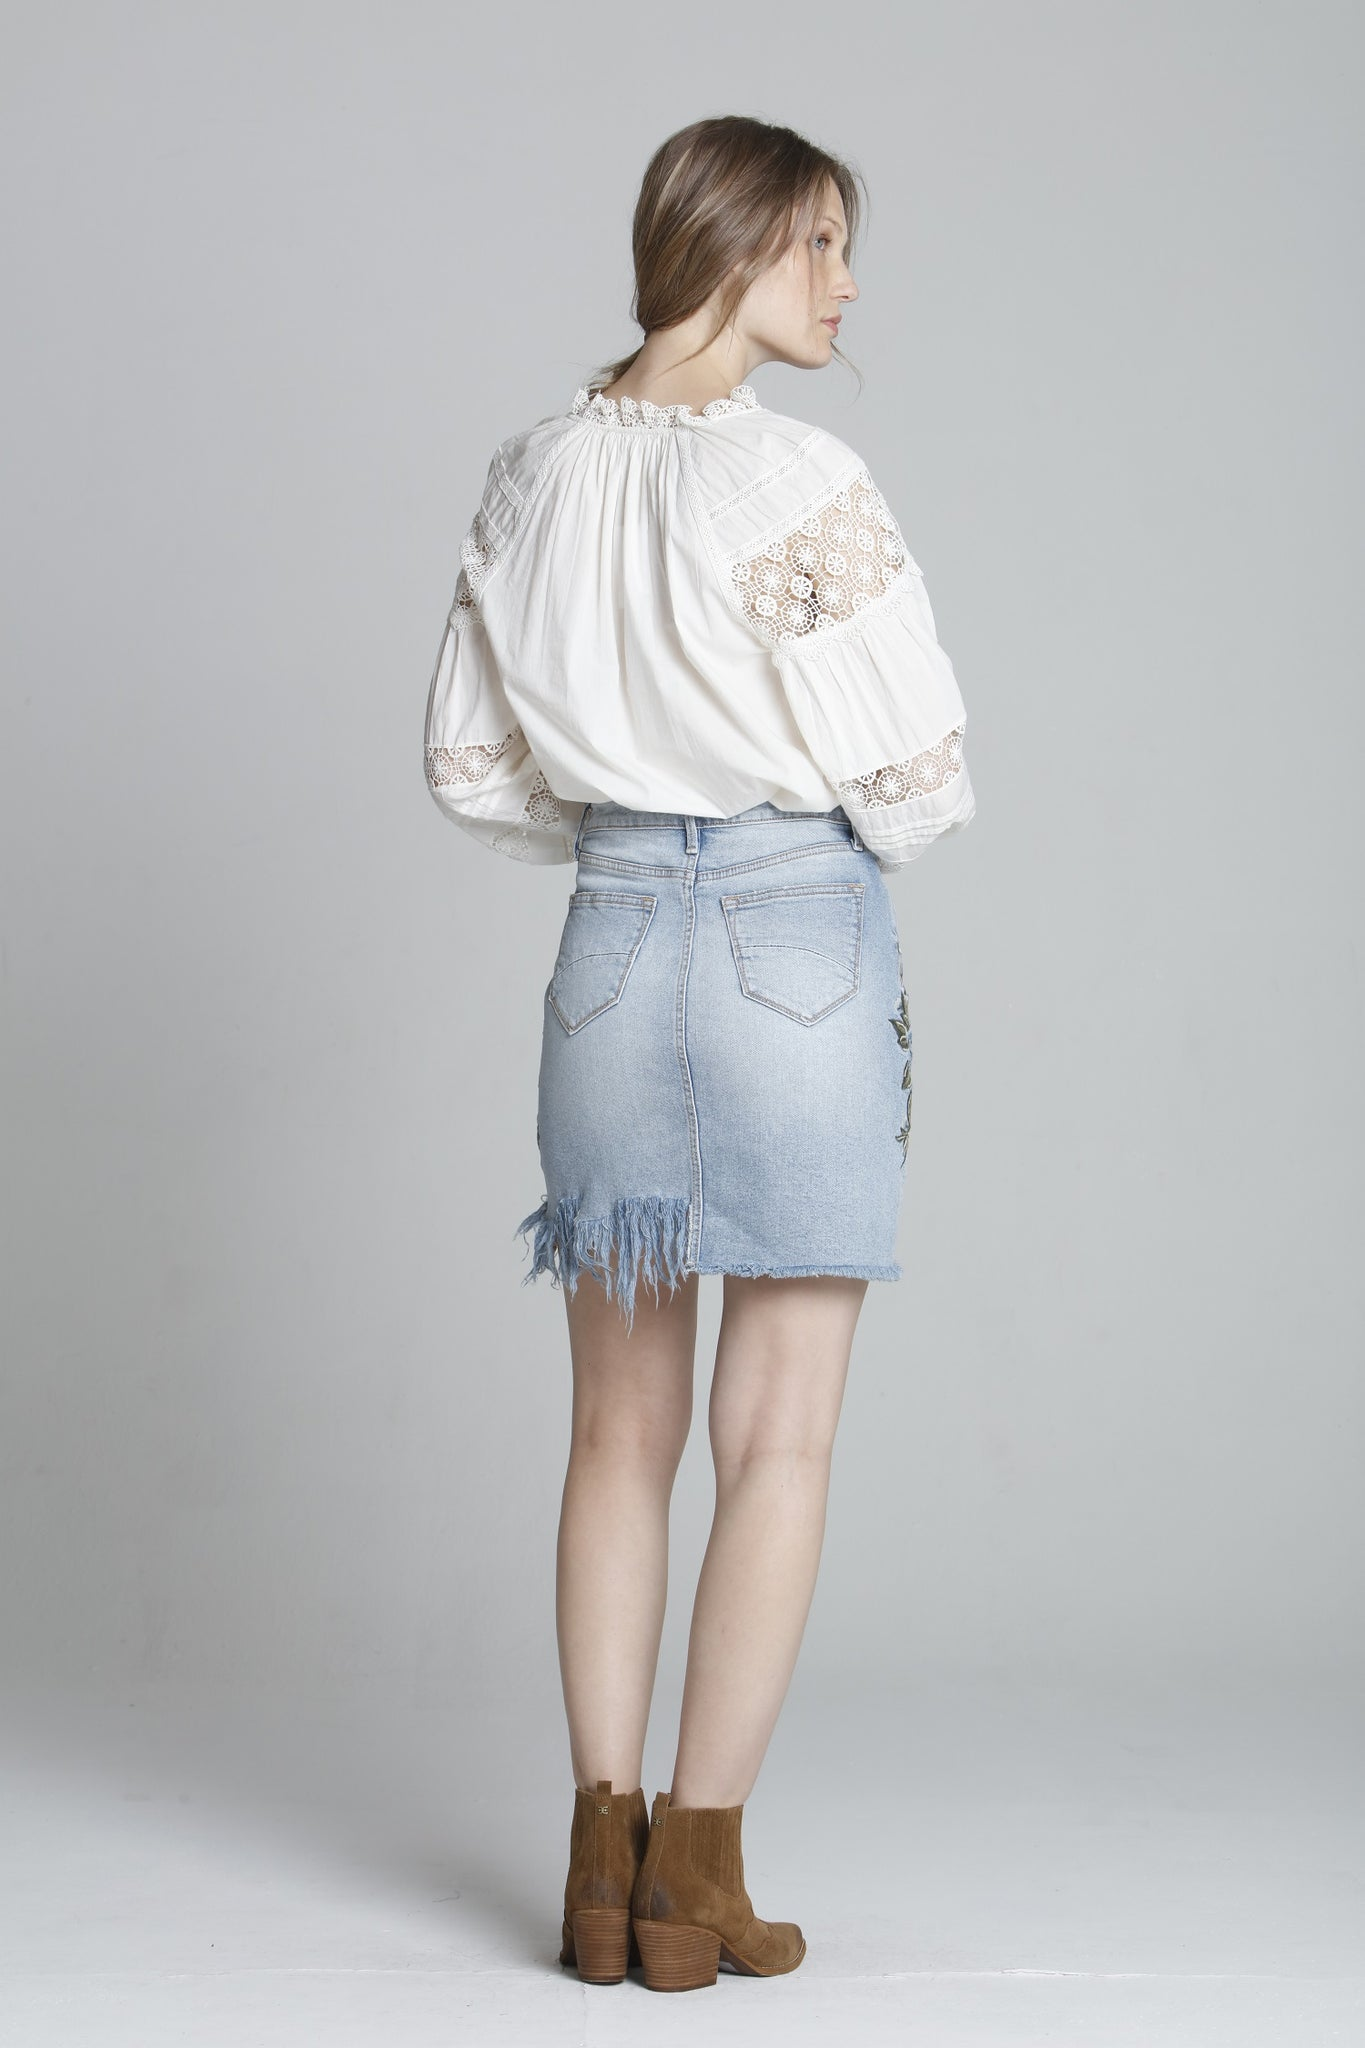 Veronica Skirt - Seville